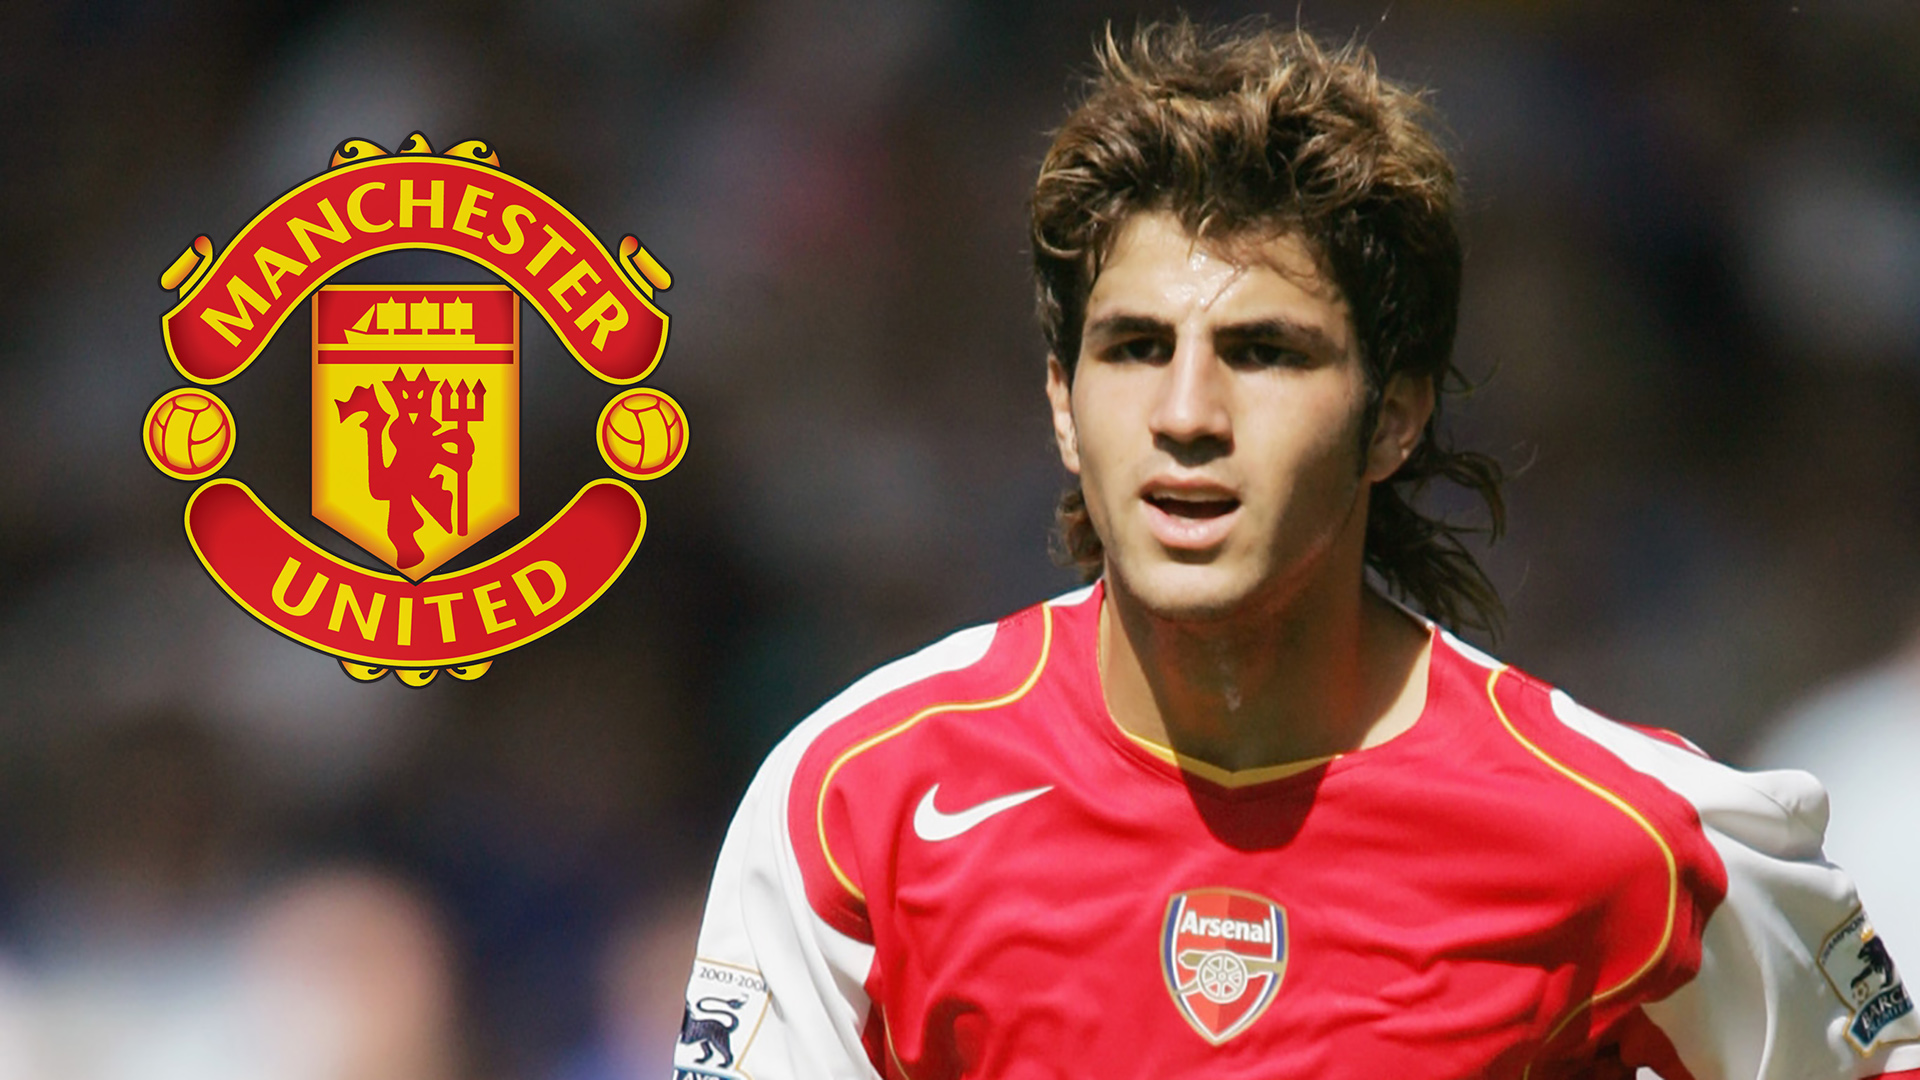 Fabregas reveals Man Utd tried to sign him at 15 & lack of trophies led to Arsenal exit